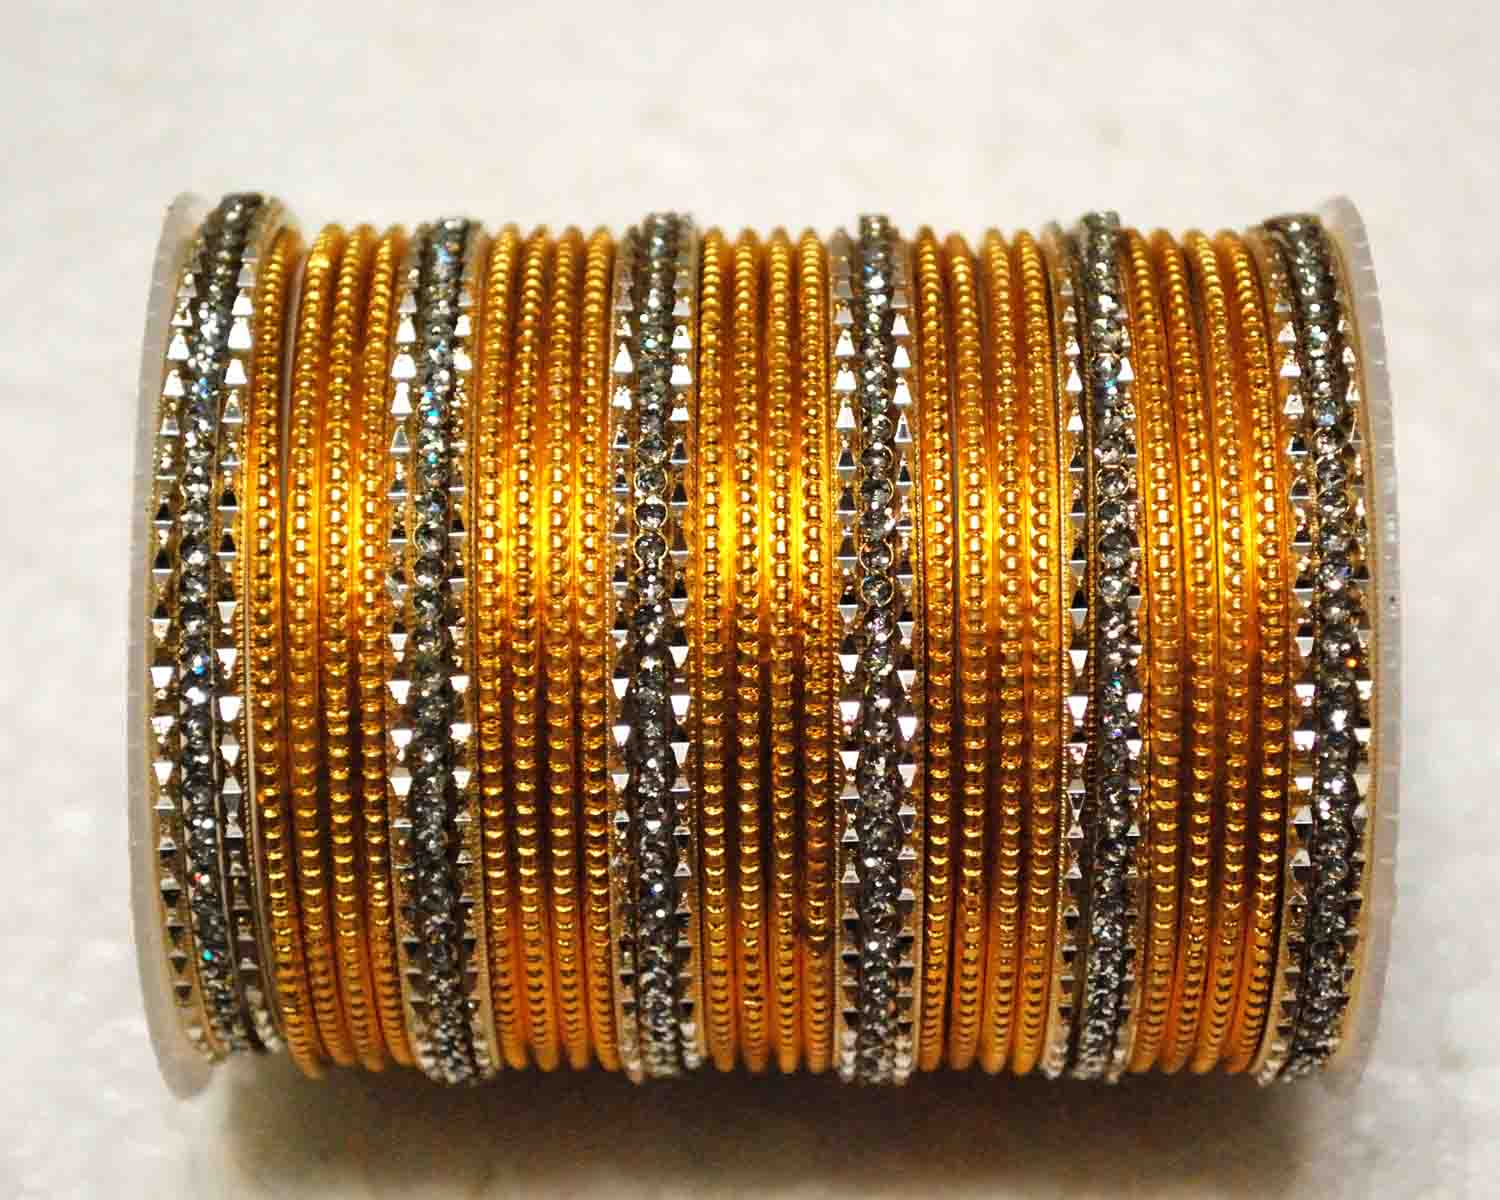 Most Famous Hyderabadi Bangles Queen Of Heaven